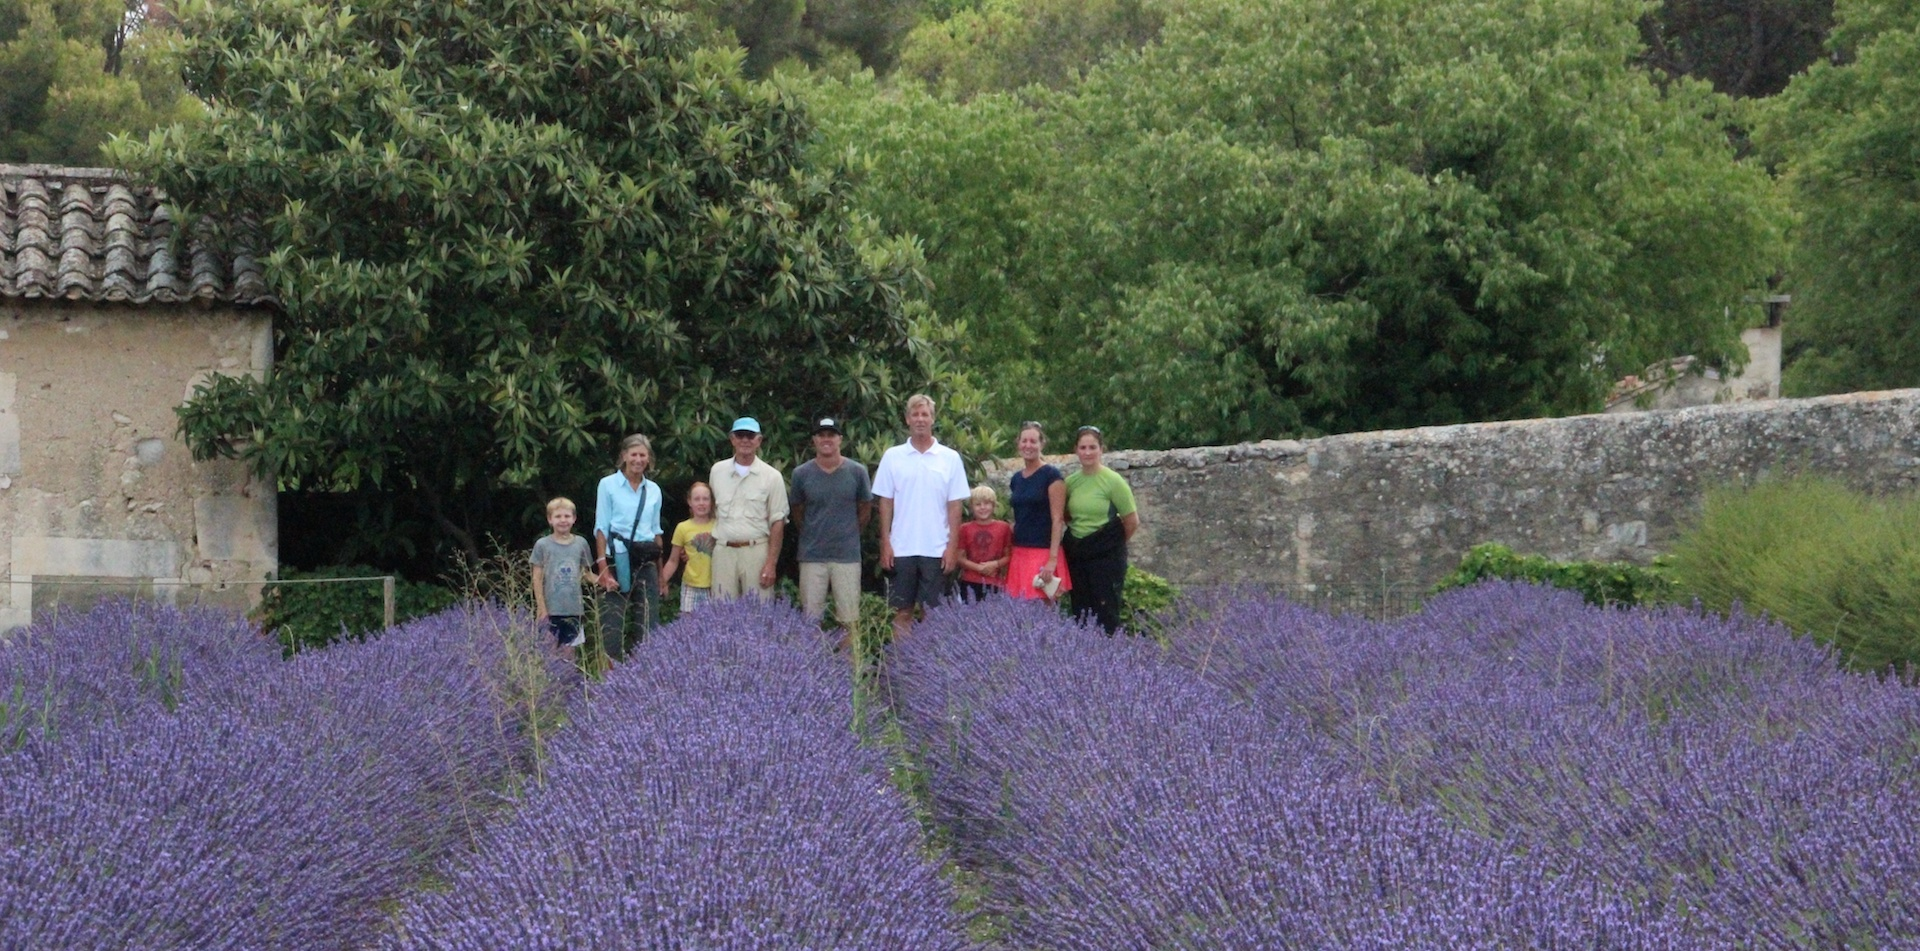 Family in lavender field Provence